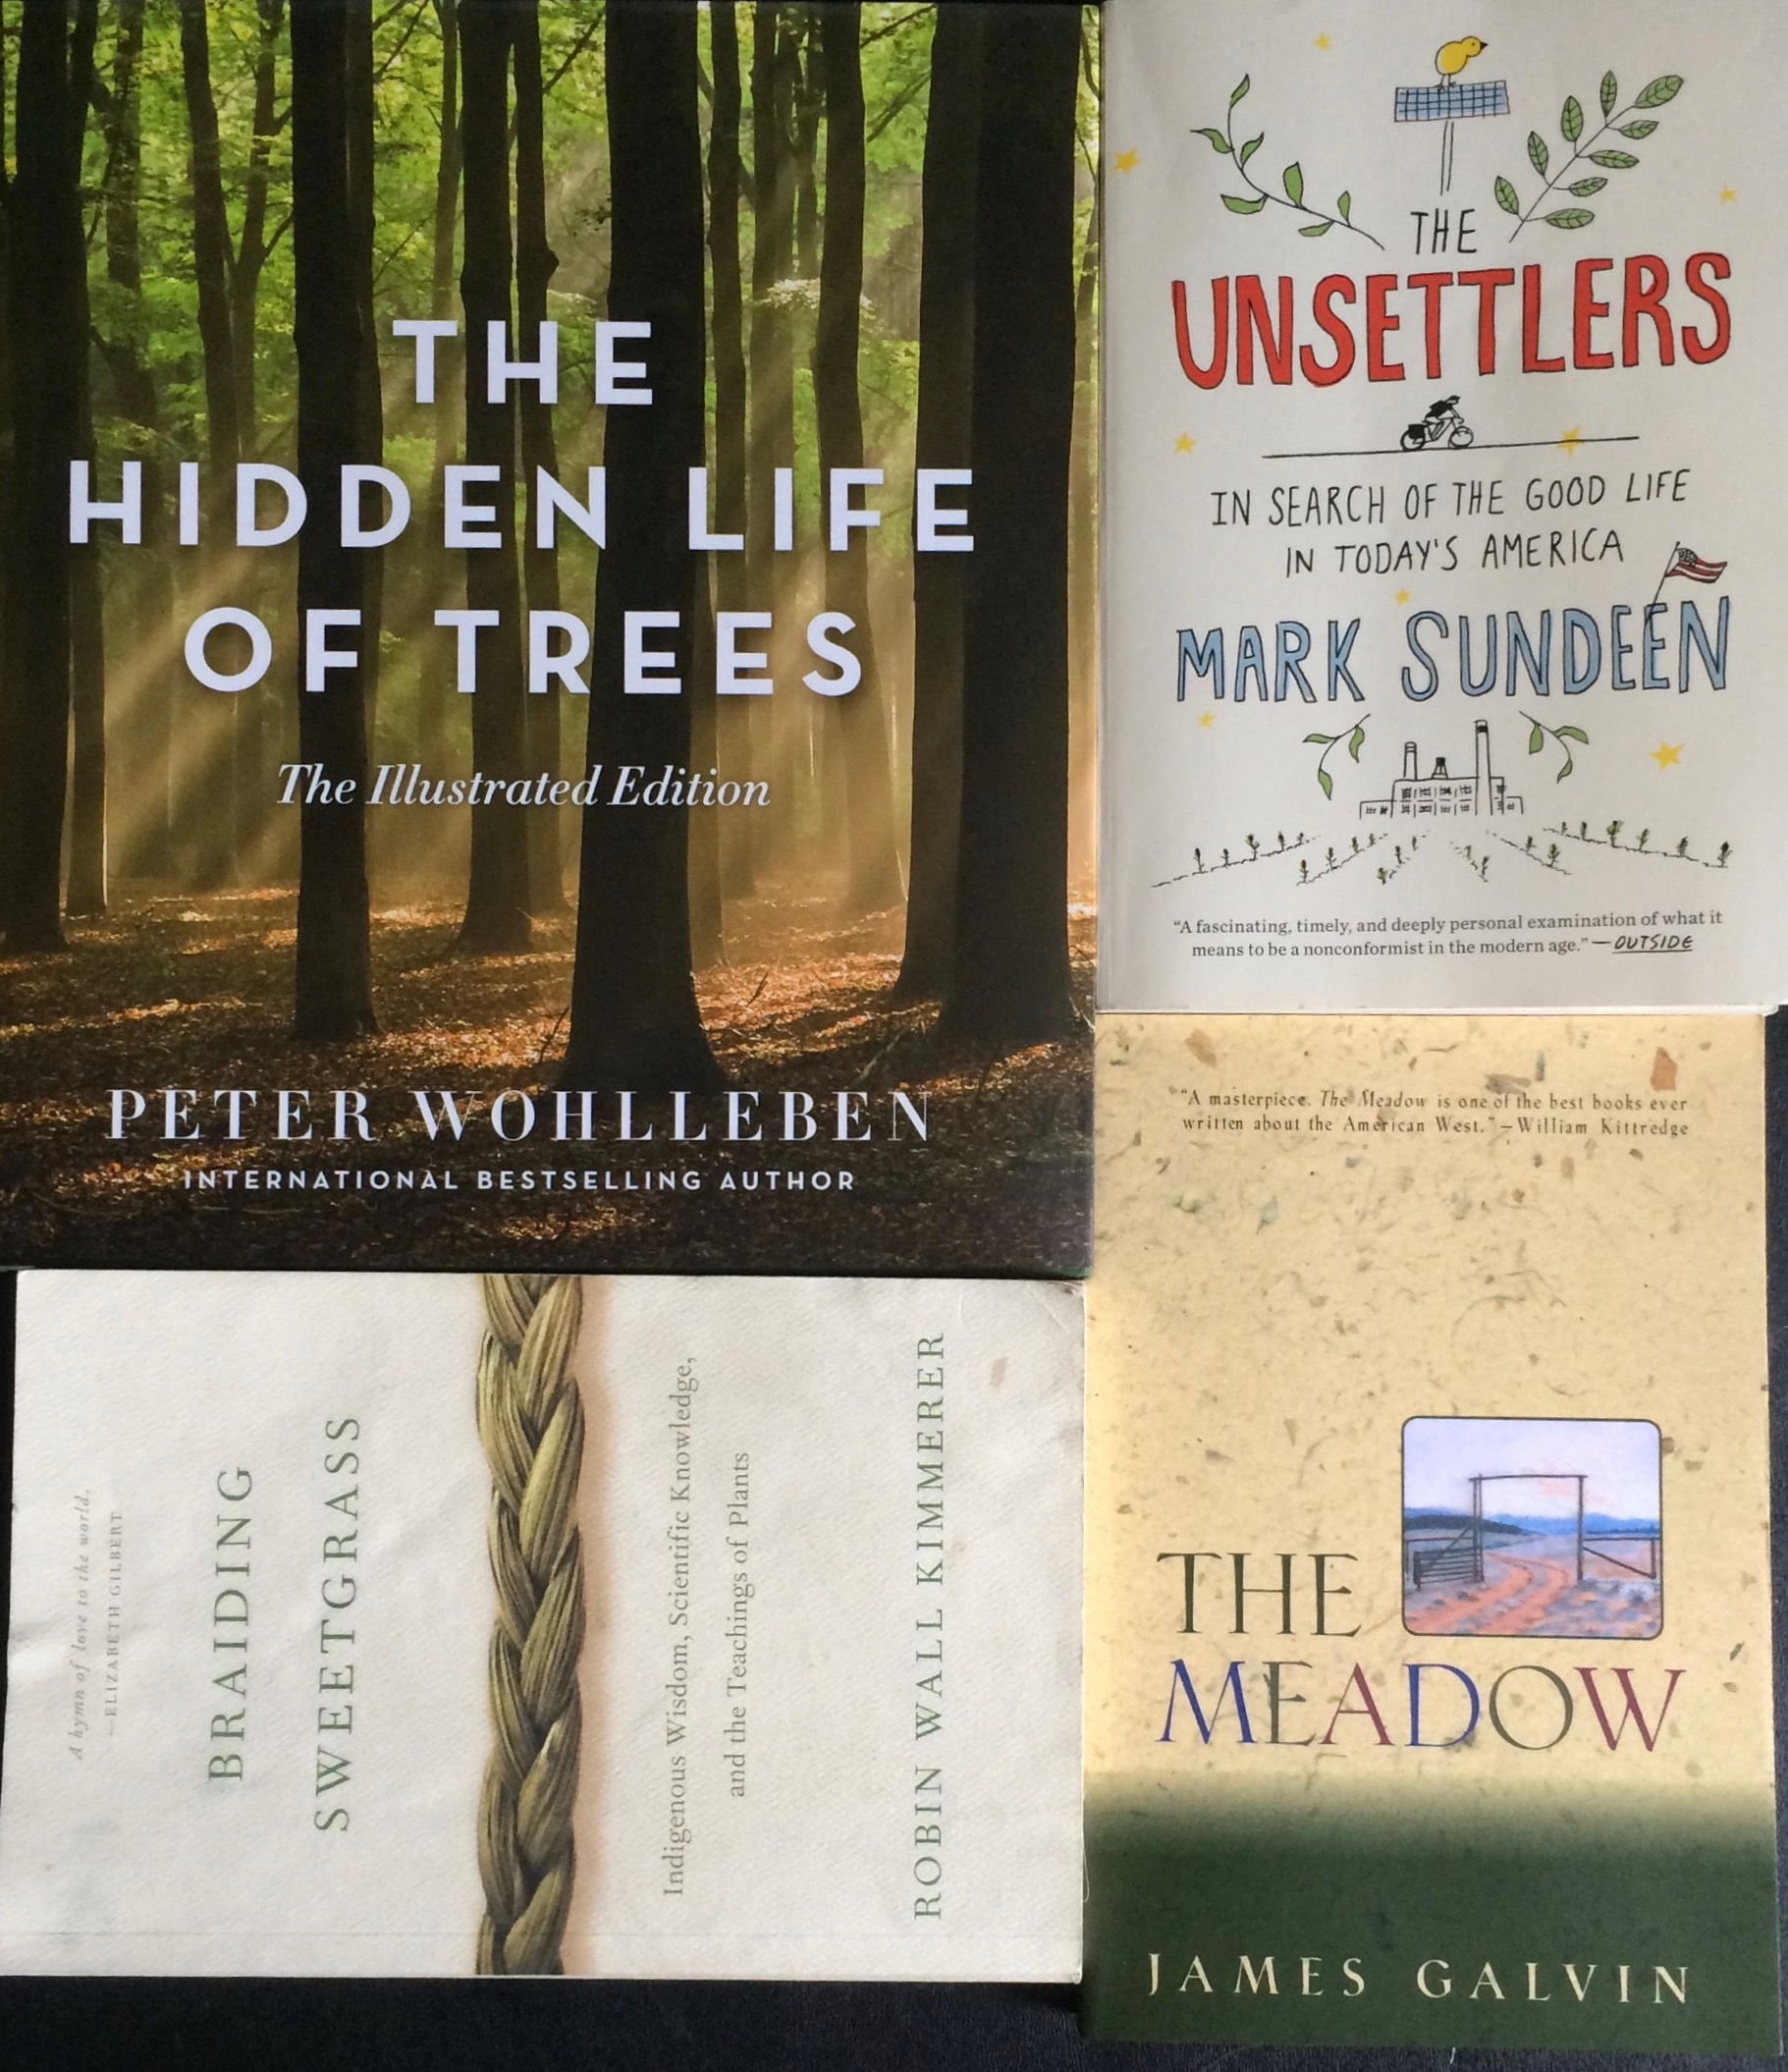 Book Discussion Group | O'Hara Commons & Sustainability Center